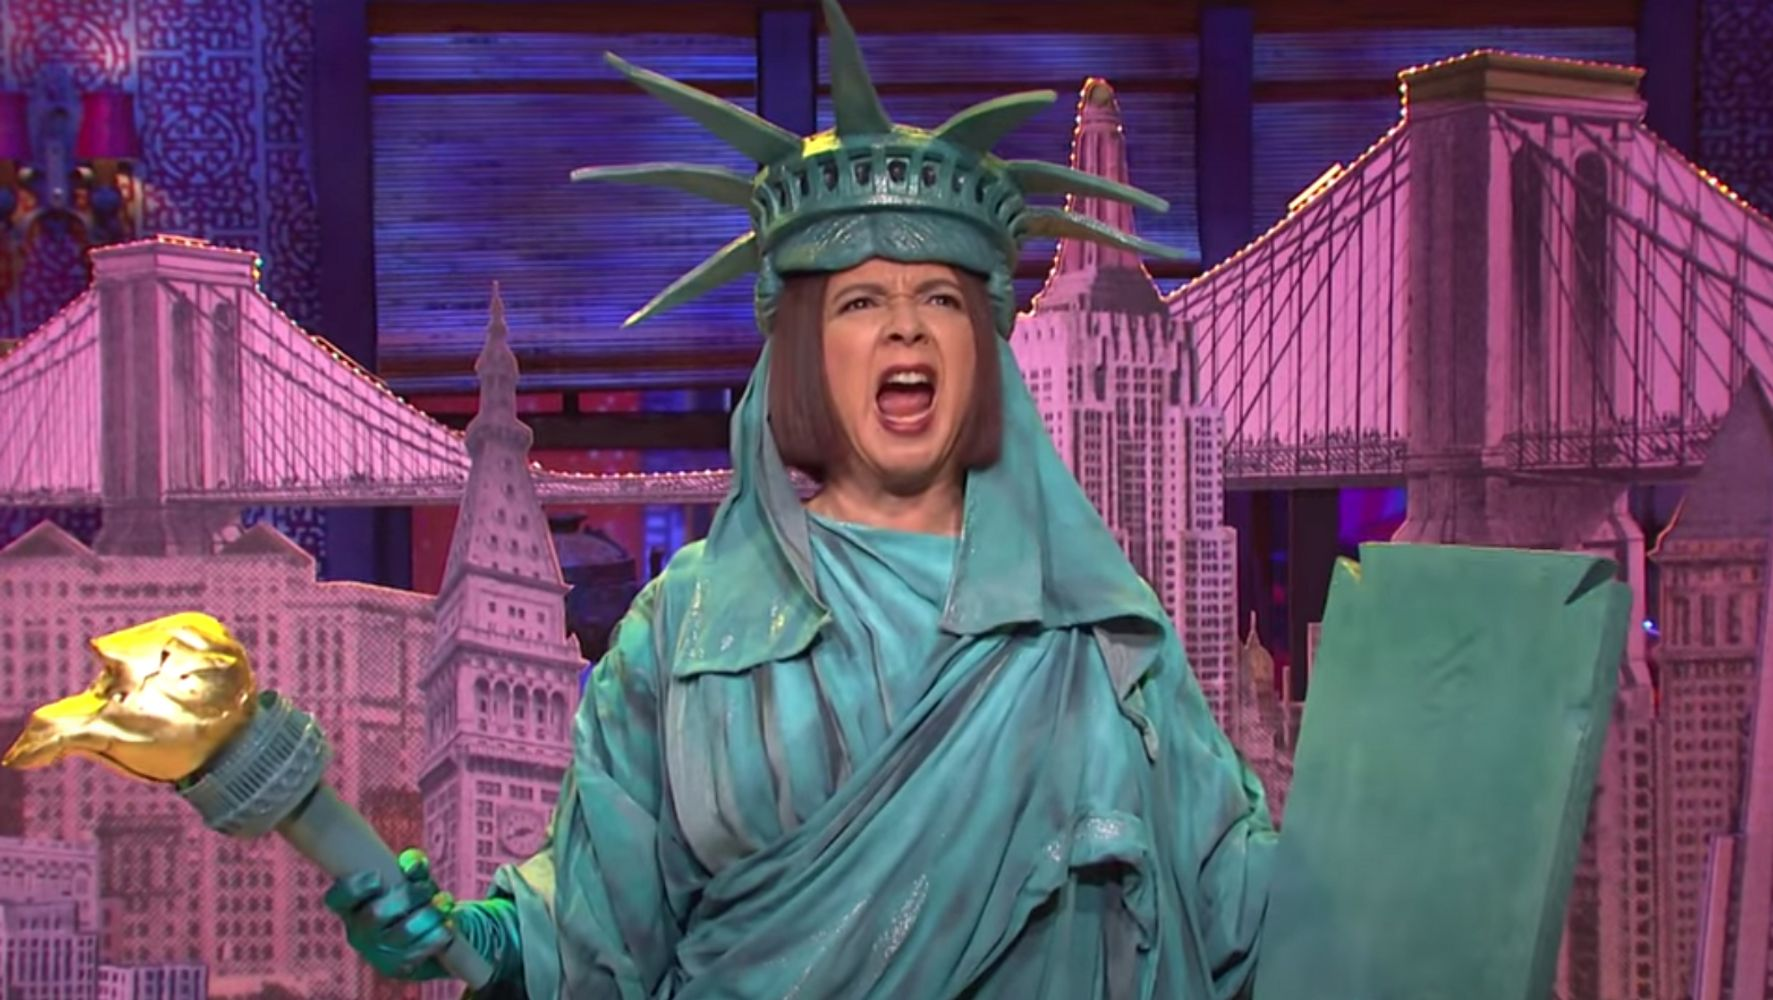 'SNL' Stages Musical Love Letter To NYC After Trump's 'Ghost Town' Diss